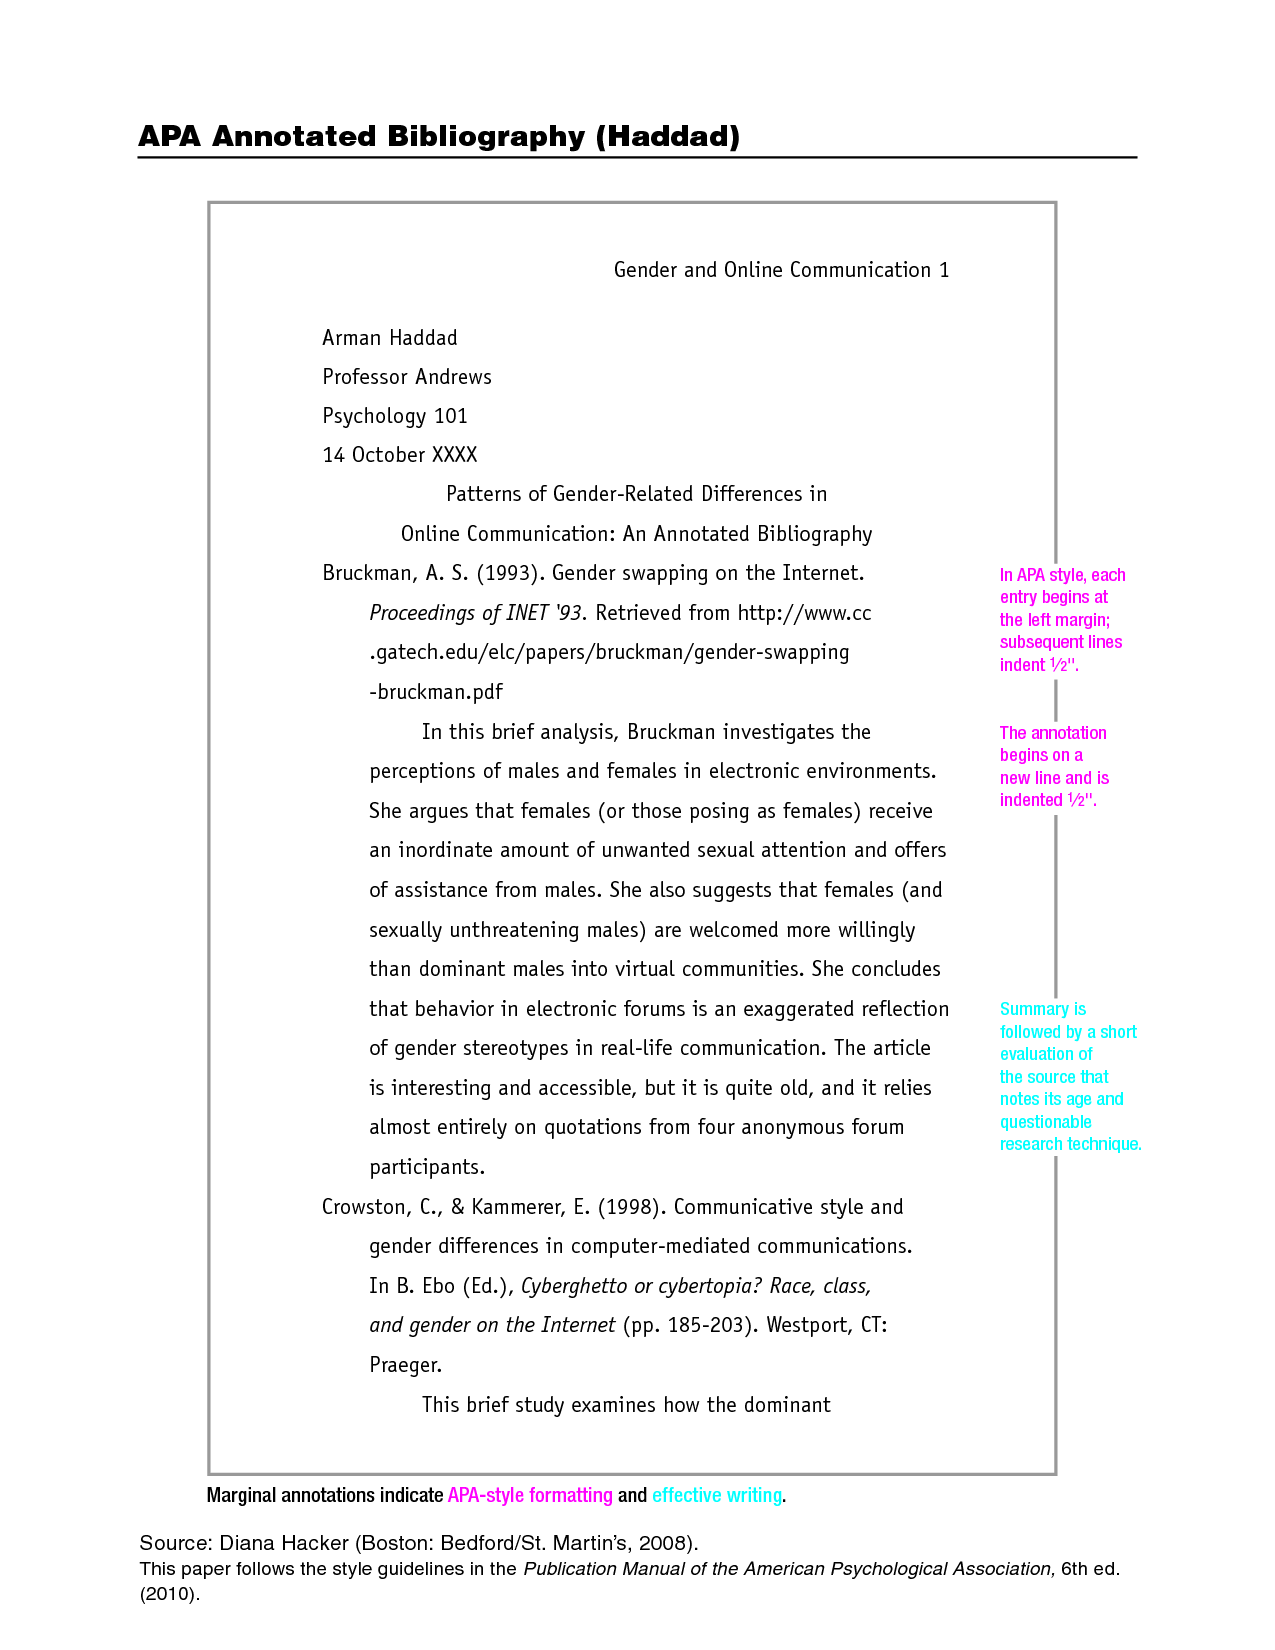 011 Apa Paper Template Si6pk8fz Essay Style Amazing Oxford Guide Questions Sat Full